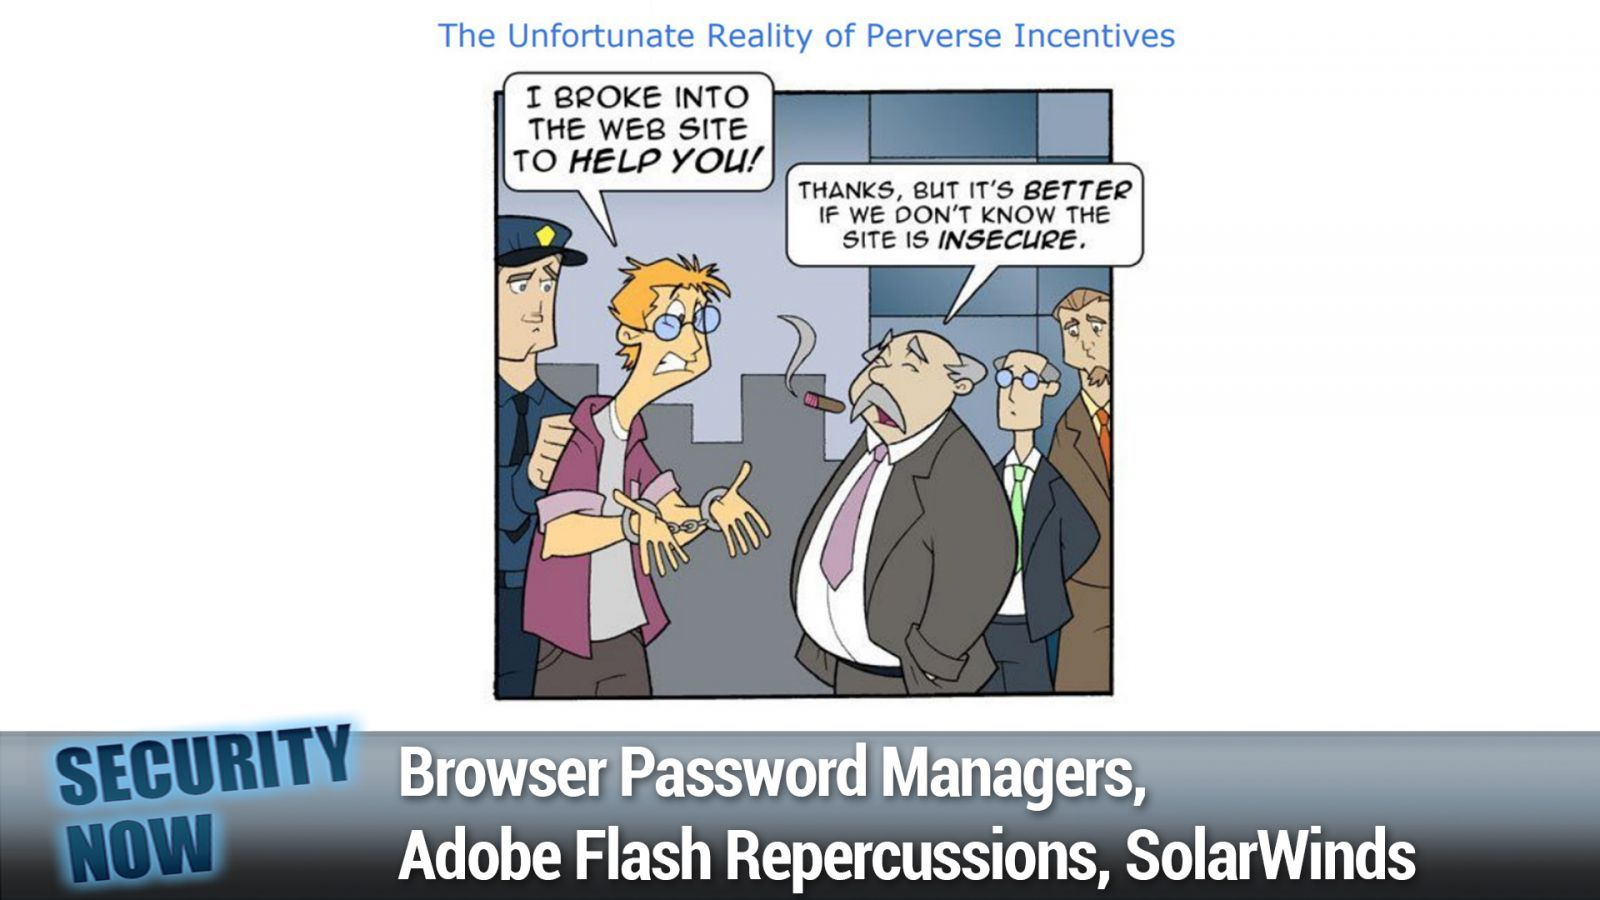 Browser Password Managers, Adobe Flash Repercussions, SolarWinds